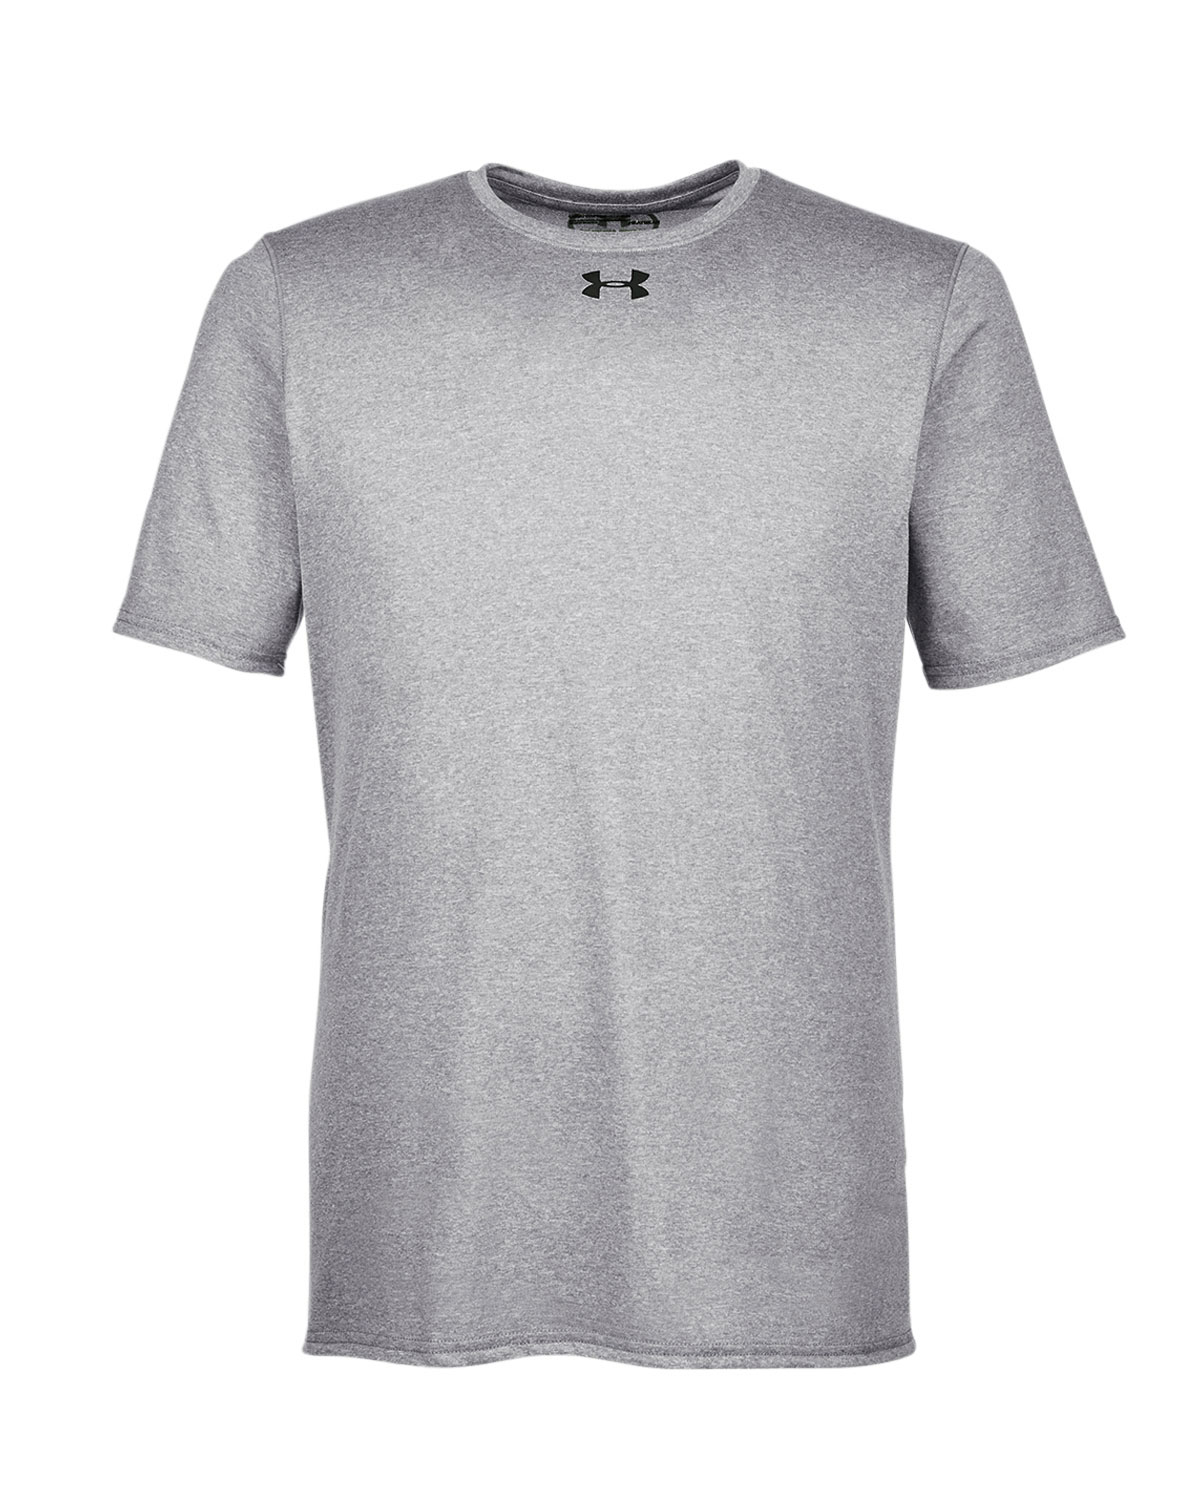 b6422e34c Custom Under Armour Mens Locker T-Shirt 2.0